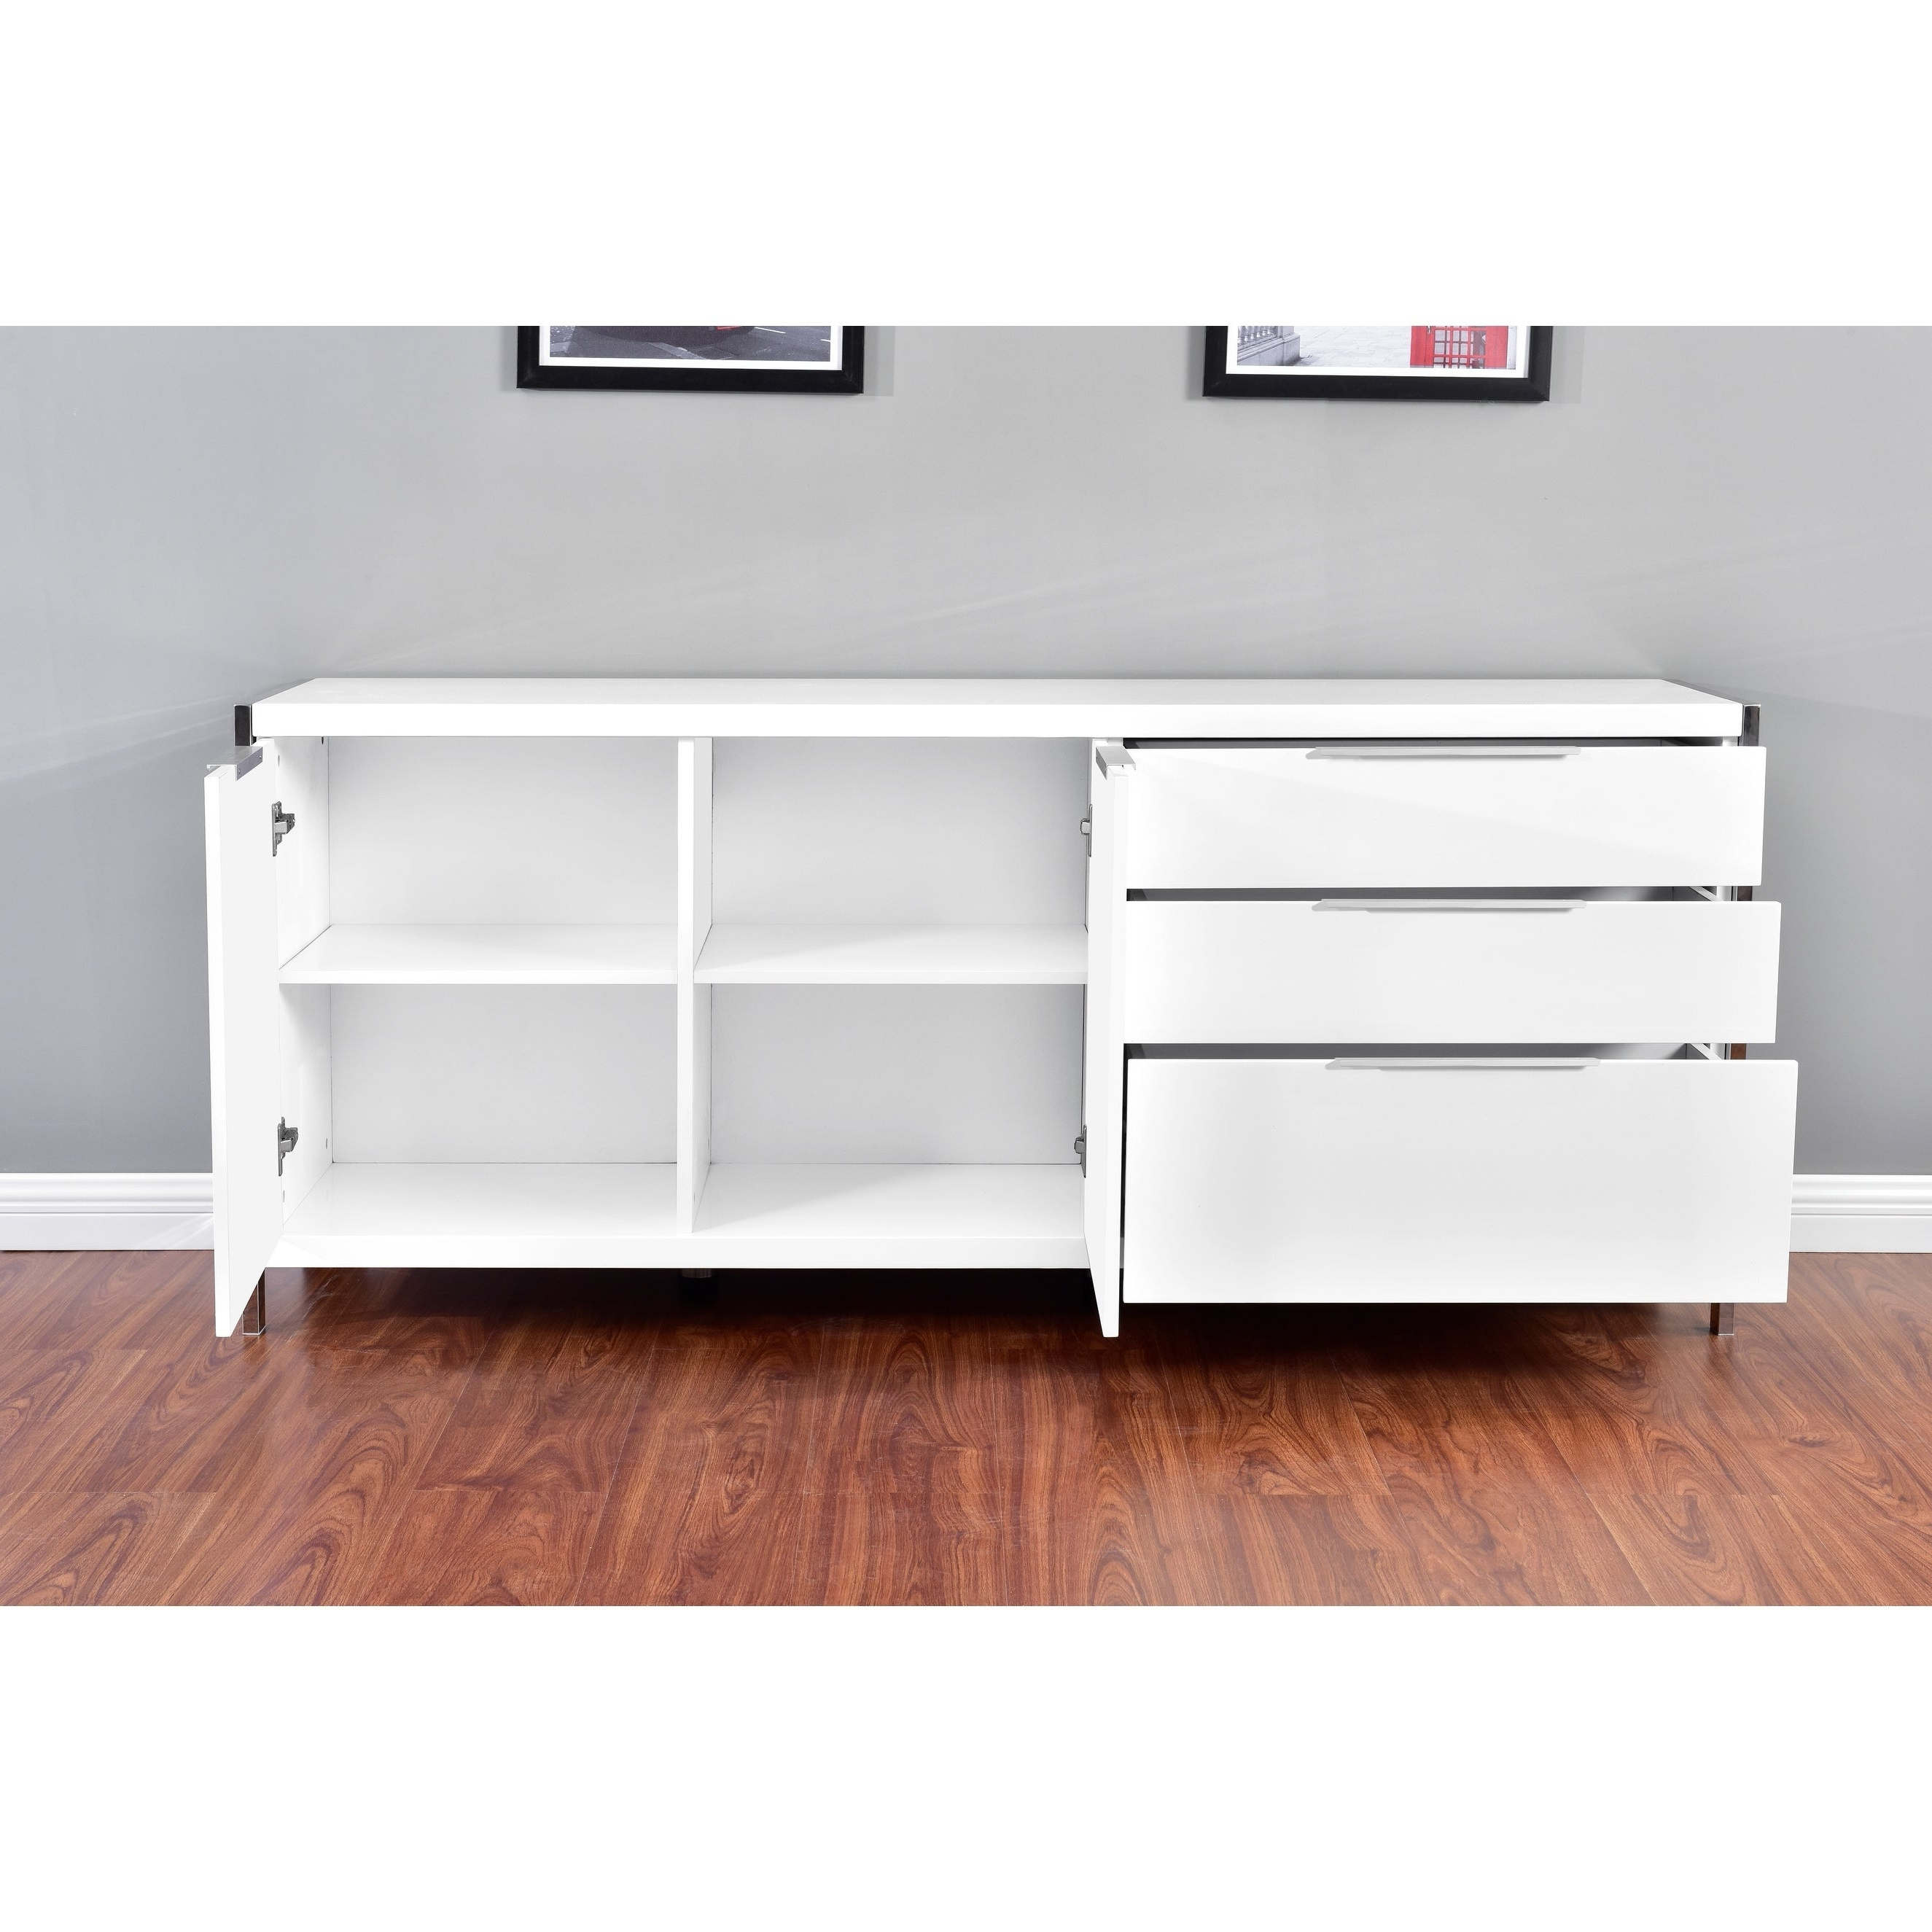 Best Quality Furniture Modern Lacquer 2 Door, 3 Drawer Cabinet With Regard To Modern Lacquer 2 Door 3 Drawer Buffets (View 4 of 20)